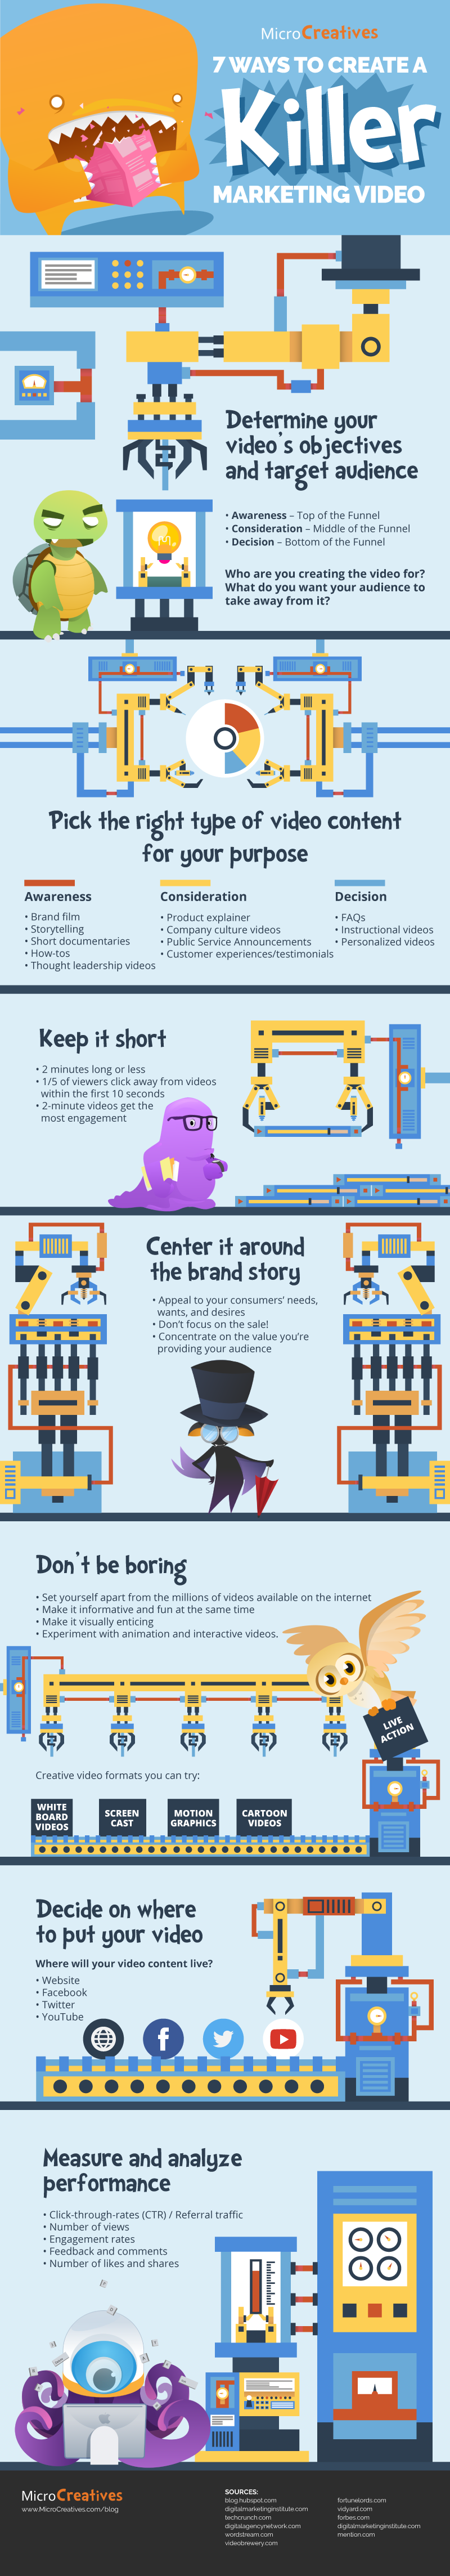 https://assets.entrepreneur.com/images/misc/1512594712_7-Ways-to-Create-a-Killer-Marketing-Video-infographic-1.png